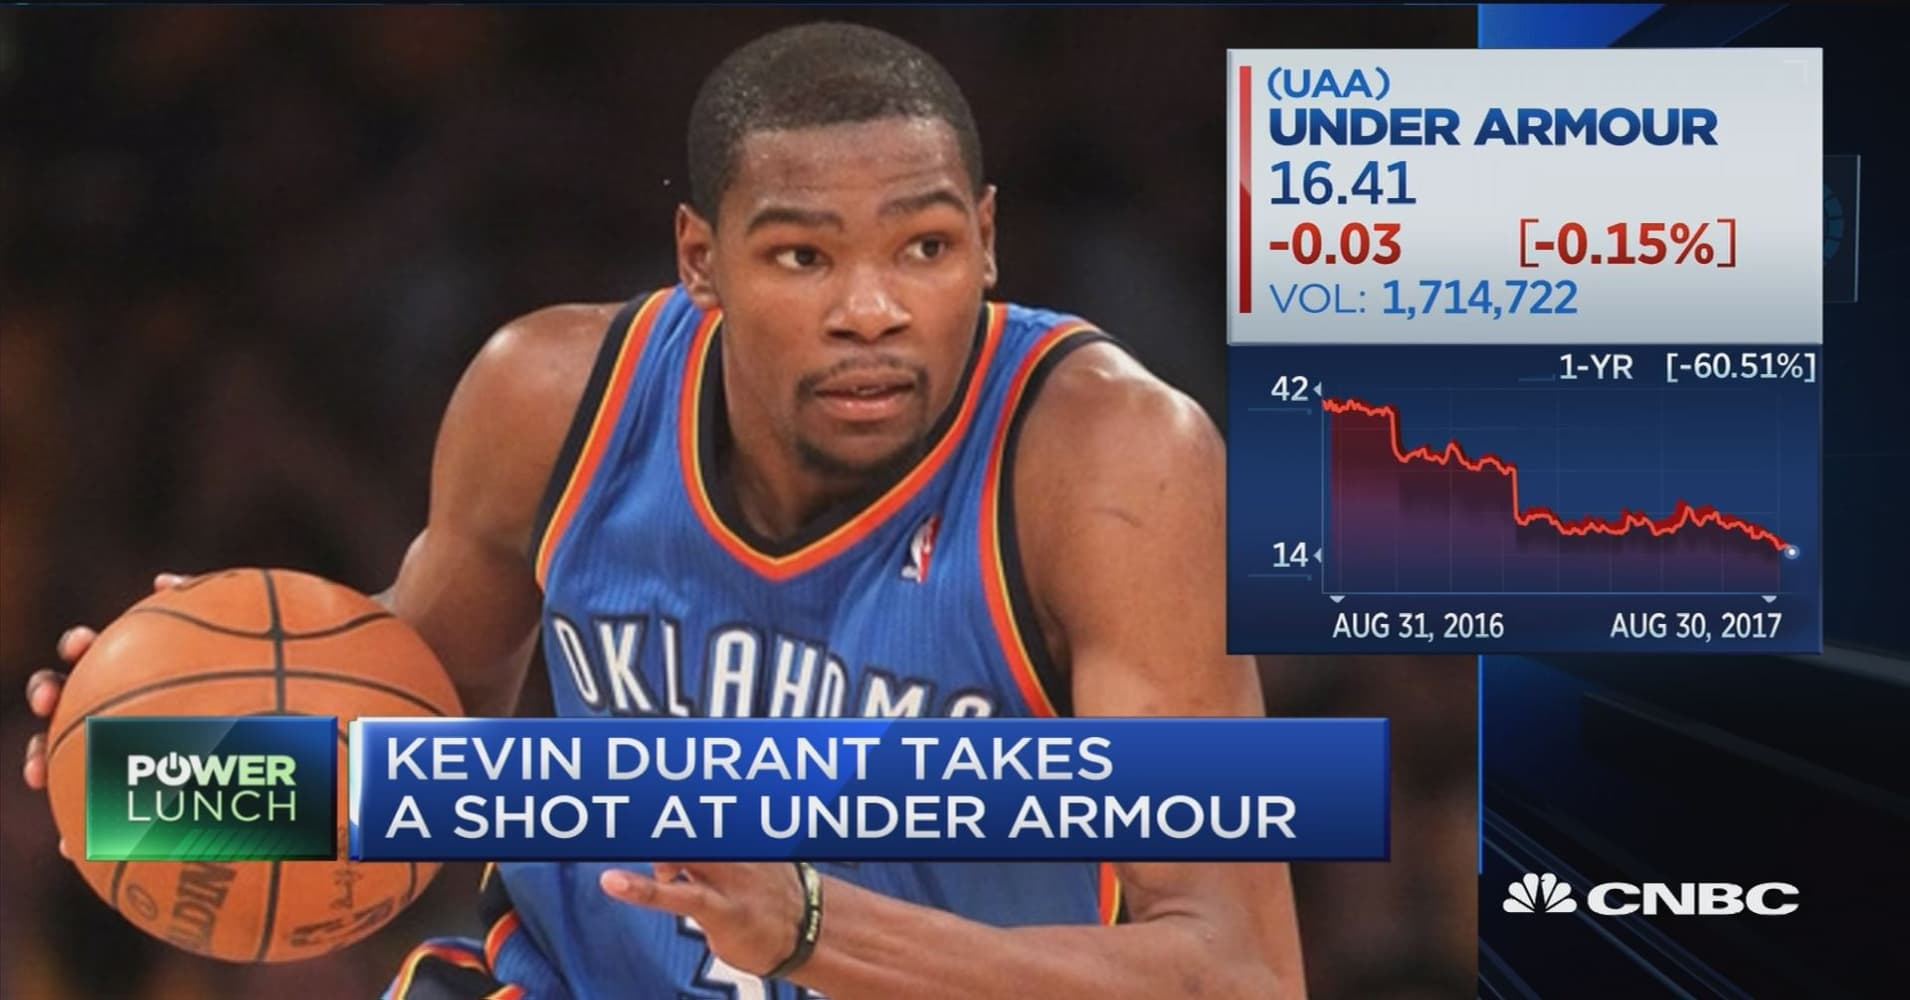 Kevin Durant Quote Enchanting Kevin Durant Takes A Shot At Under Armour